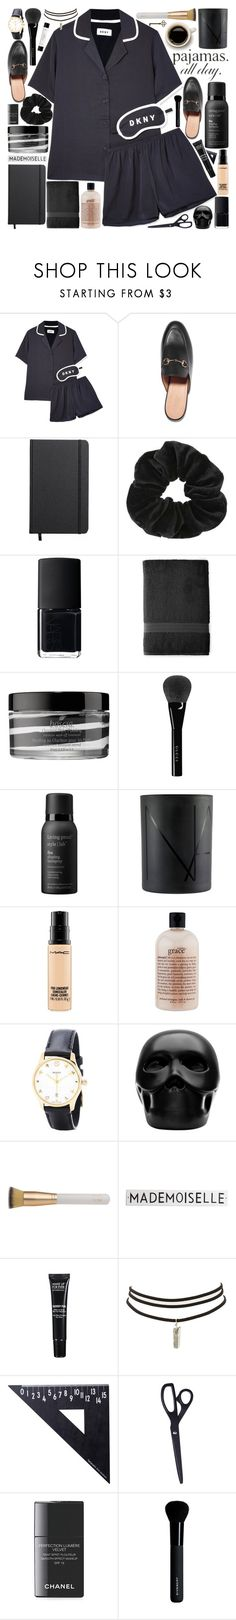 """""""Tears are rollin' down my face, now you gotta go"""" by pure-and-valuable ❤ liked on Polyvore featuring DKNY, Gucci, Shinola, Miss Selfridge, NARS Cosmetics, Royal Velvet, Boscia, Living Proof, MAC Cosmetics and philosophy"""